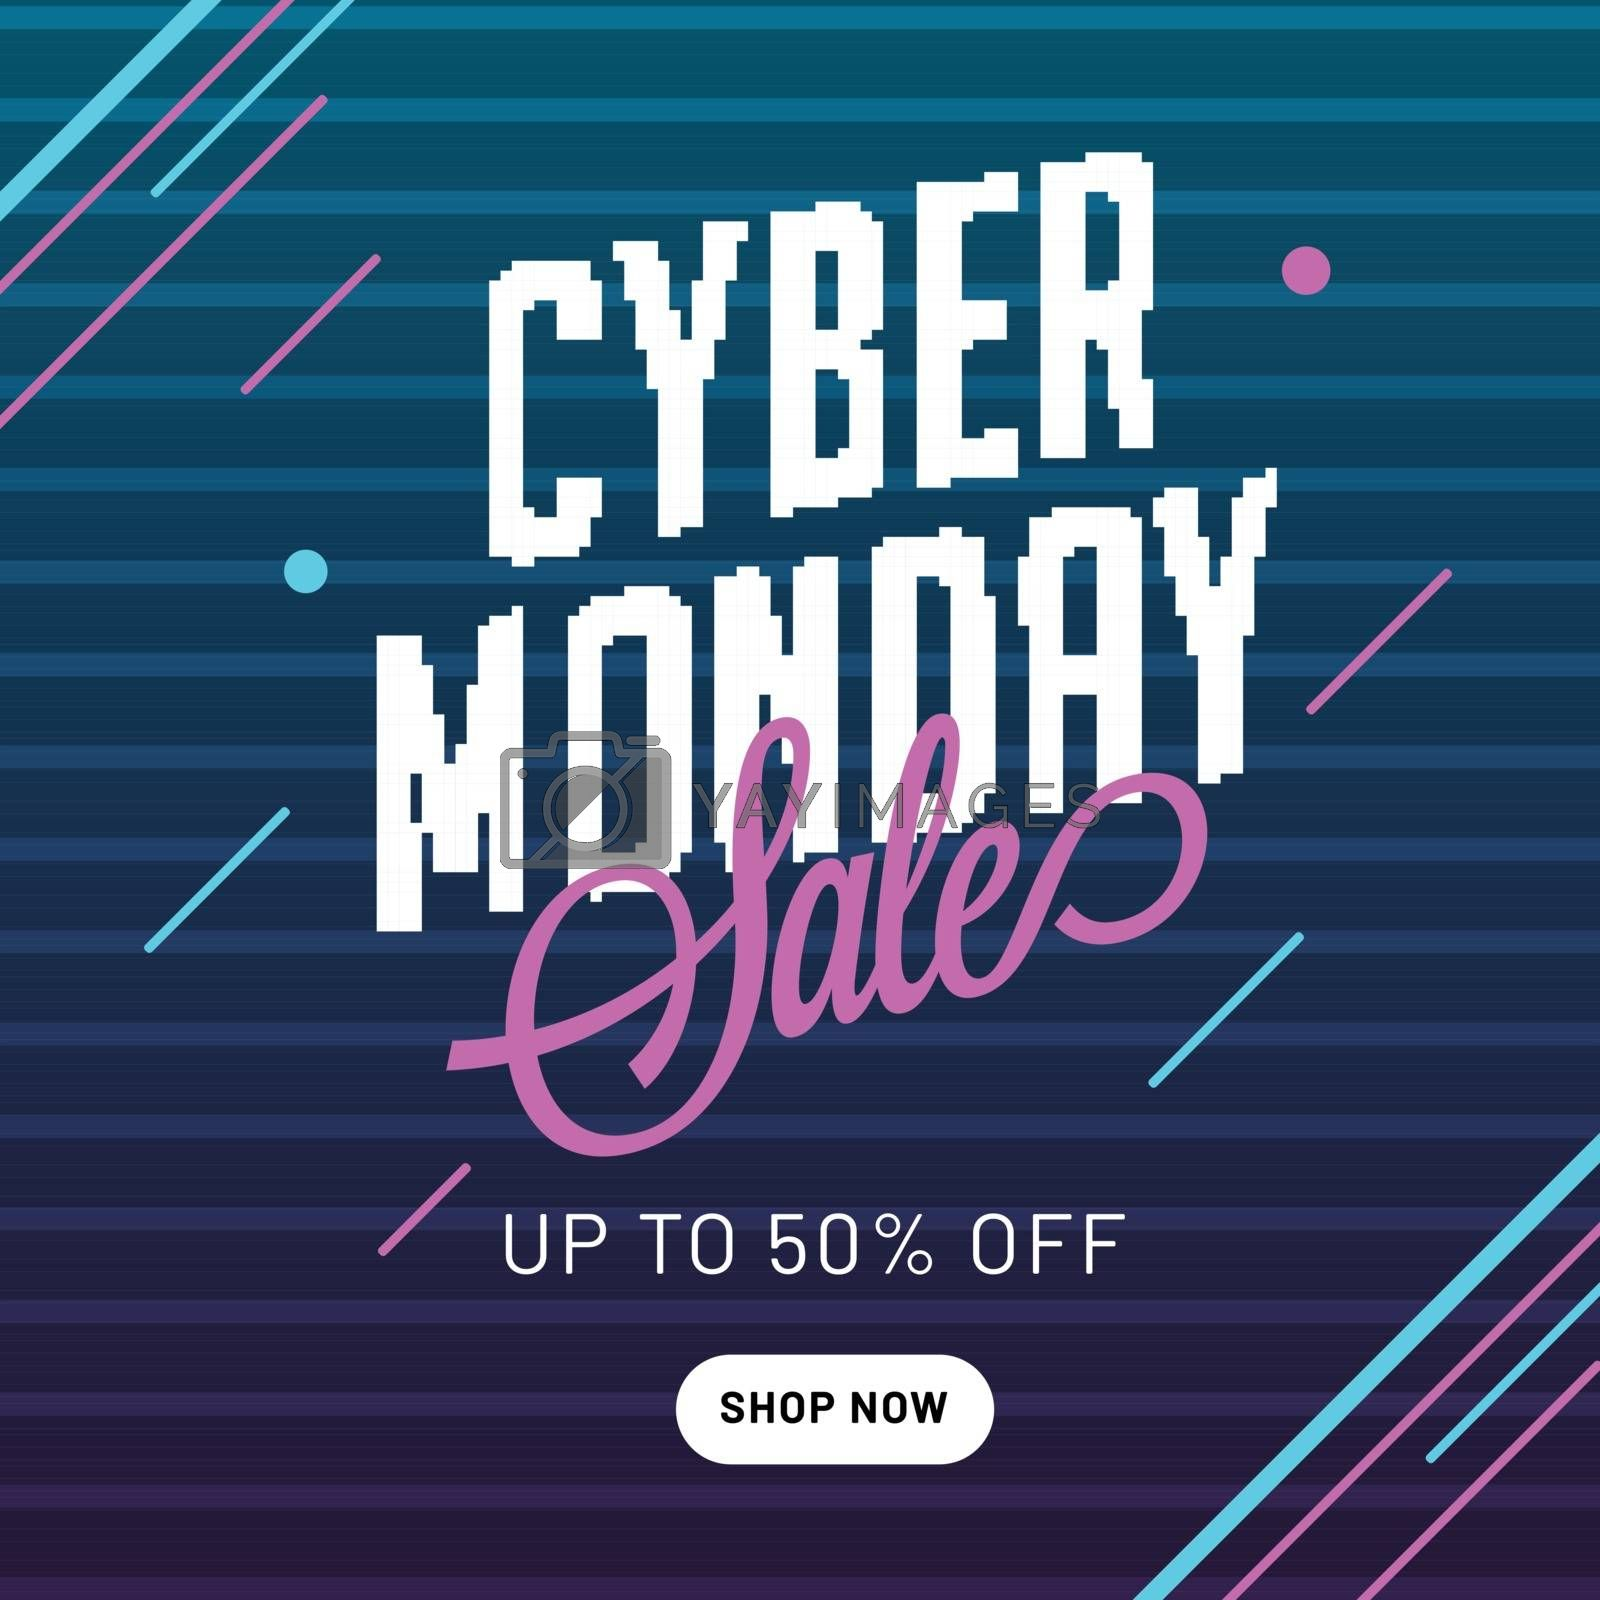 Up to 50% discount offer for Cyber Monday Sale, advertising template or flyer design.